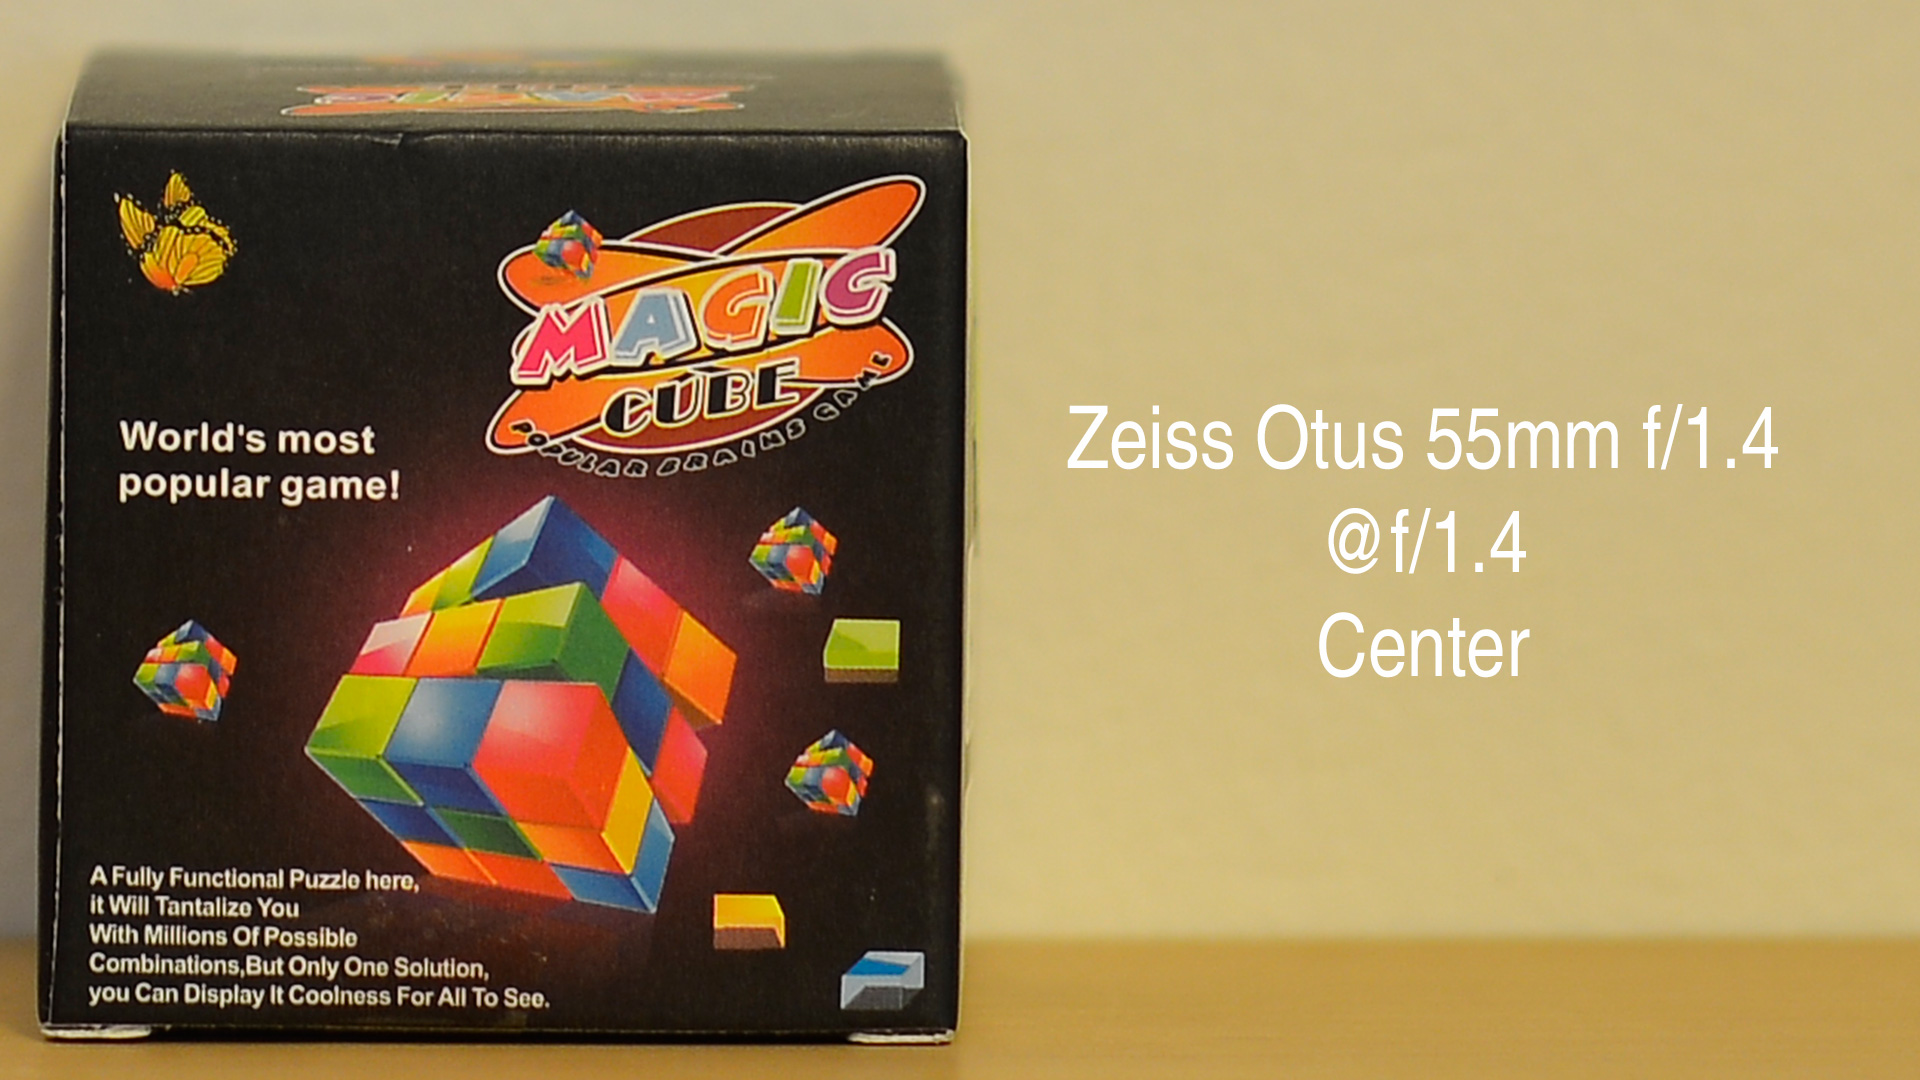 Zeiss-Otus-55mm-f1_4-Center